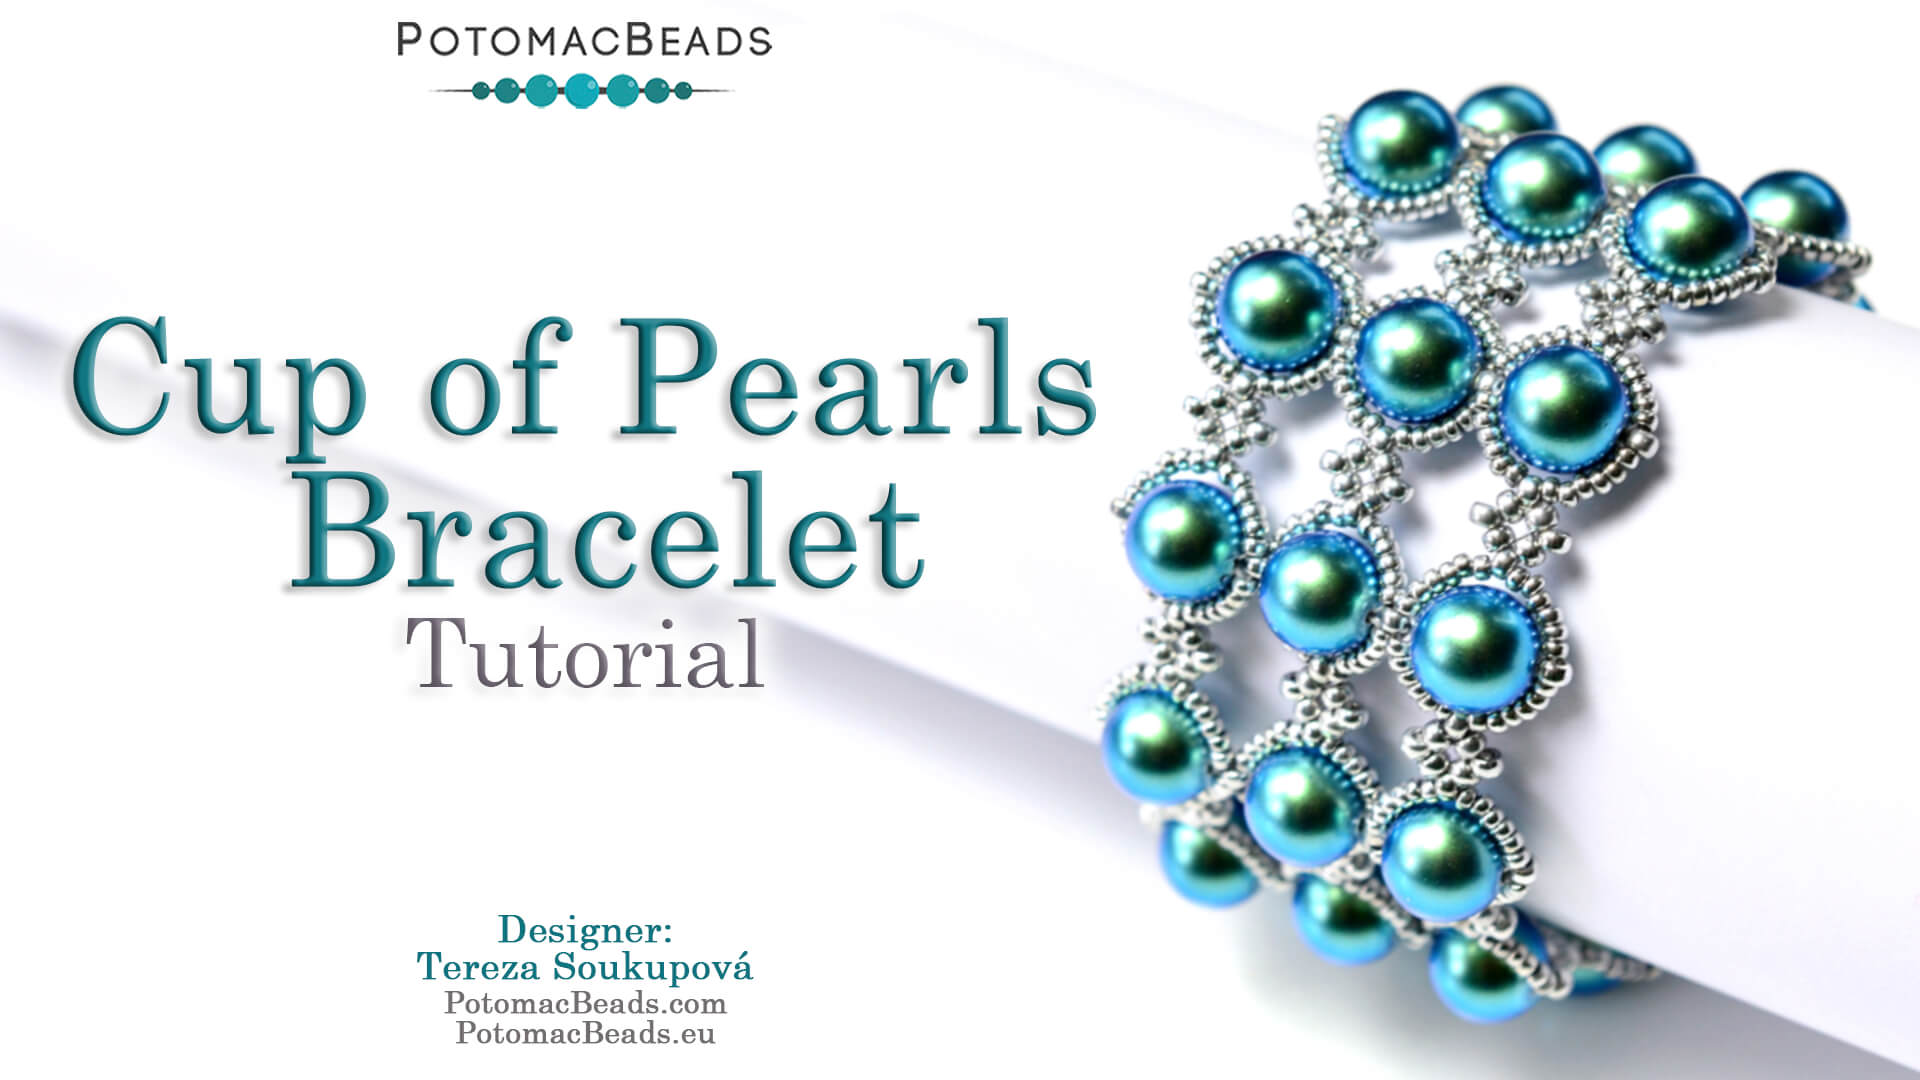 How to Bead Jewelry / Videos Sorted by Beads / Pearl Videos (Czech, Freshwater, Potomac Pearls) / Cup of Pearls Bracelet Tutorial